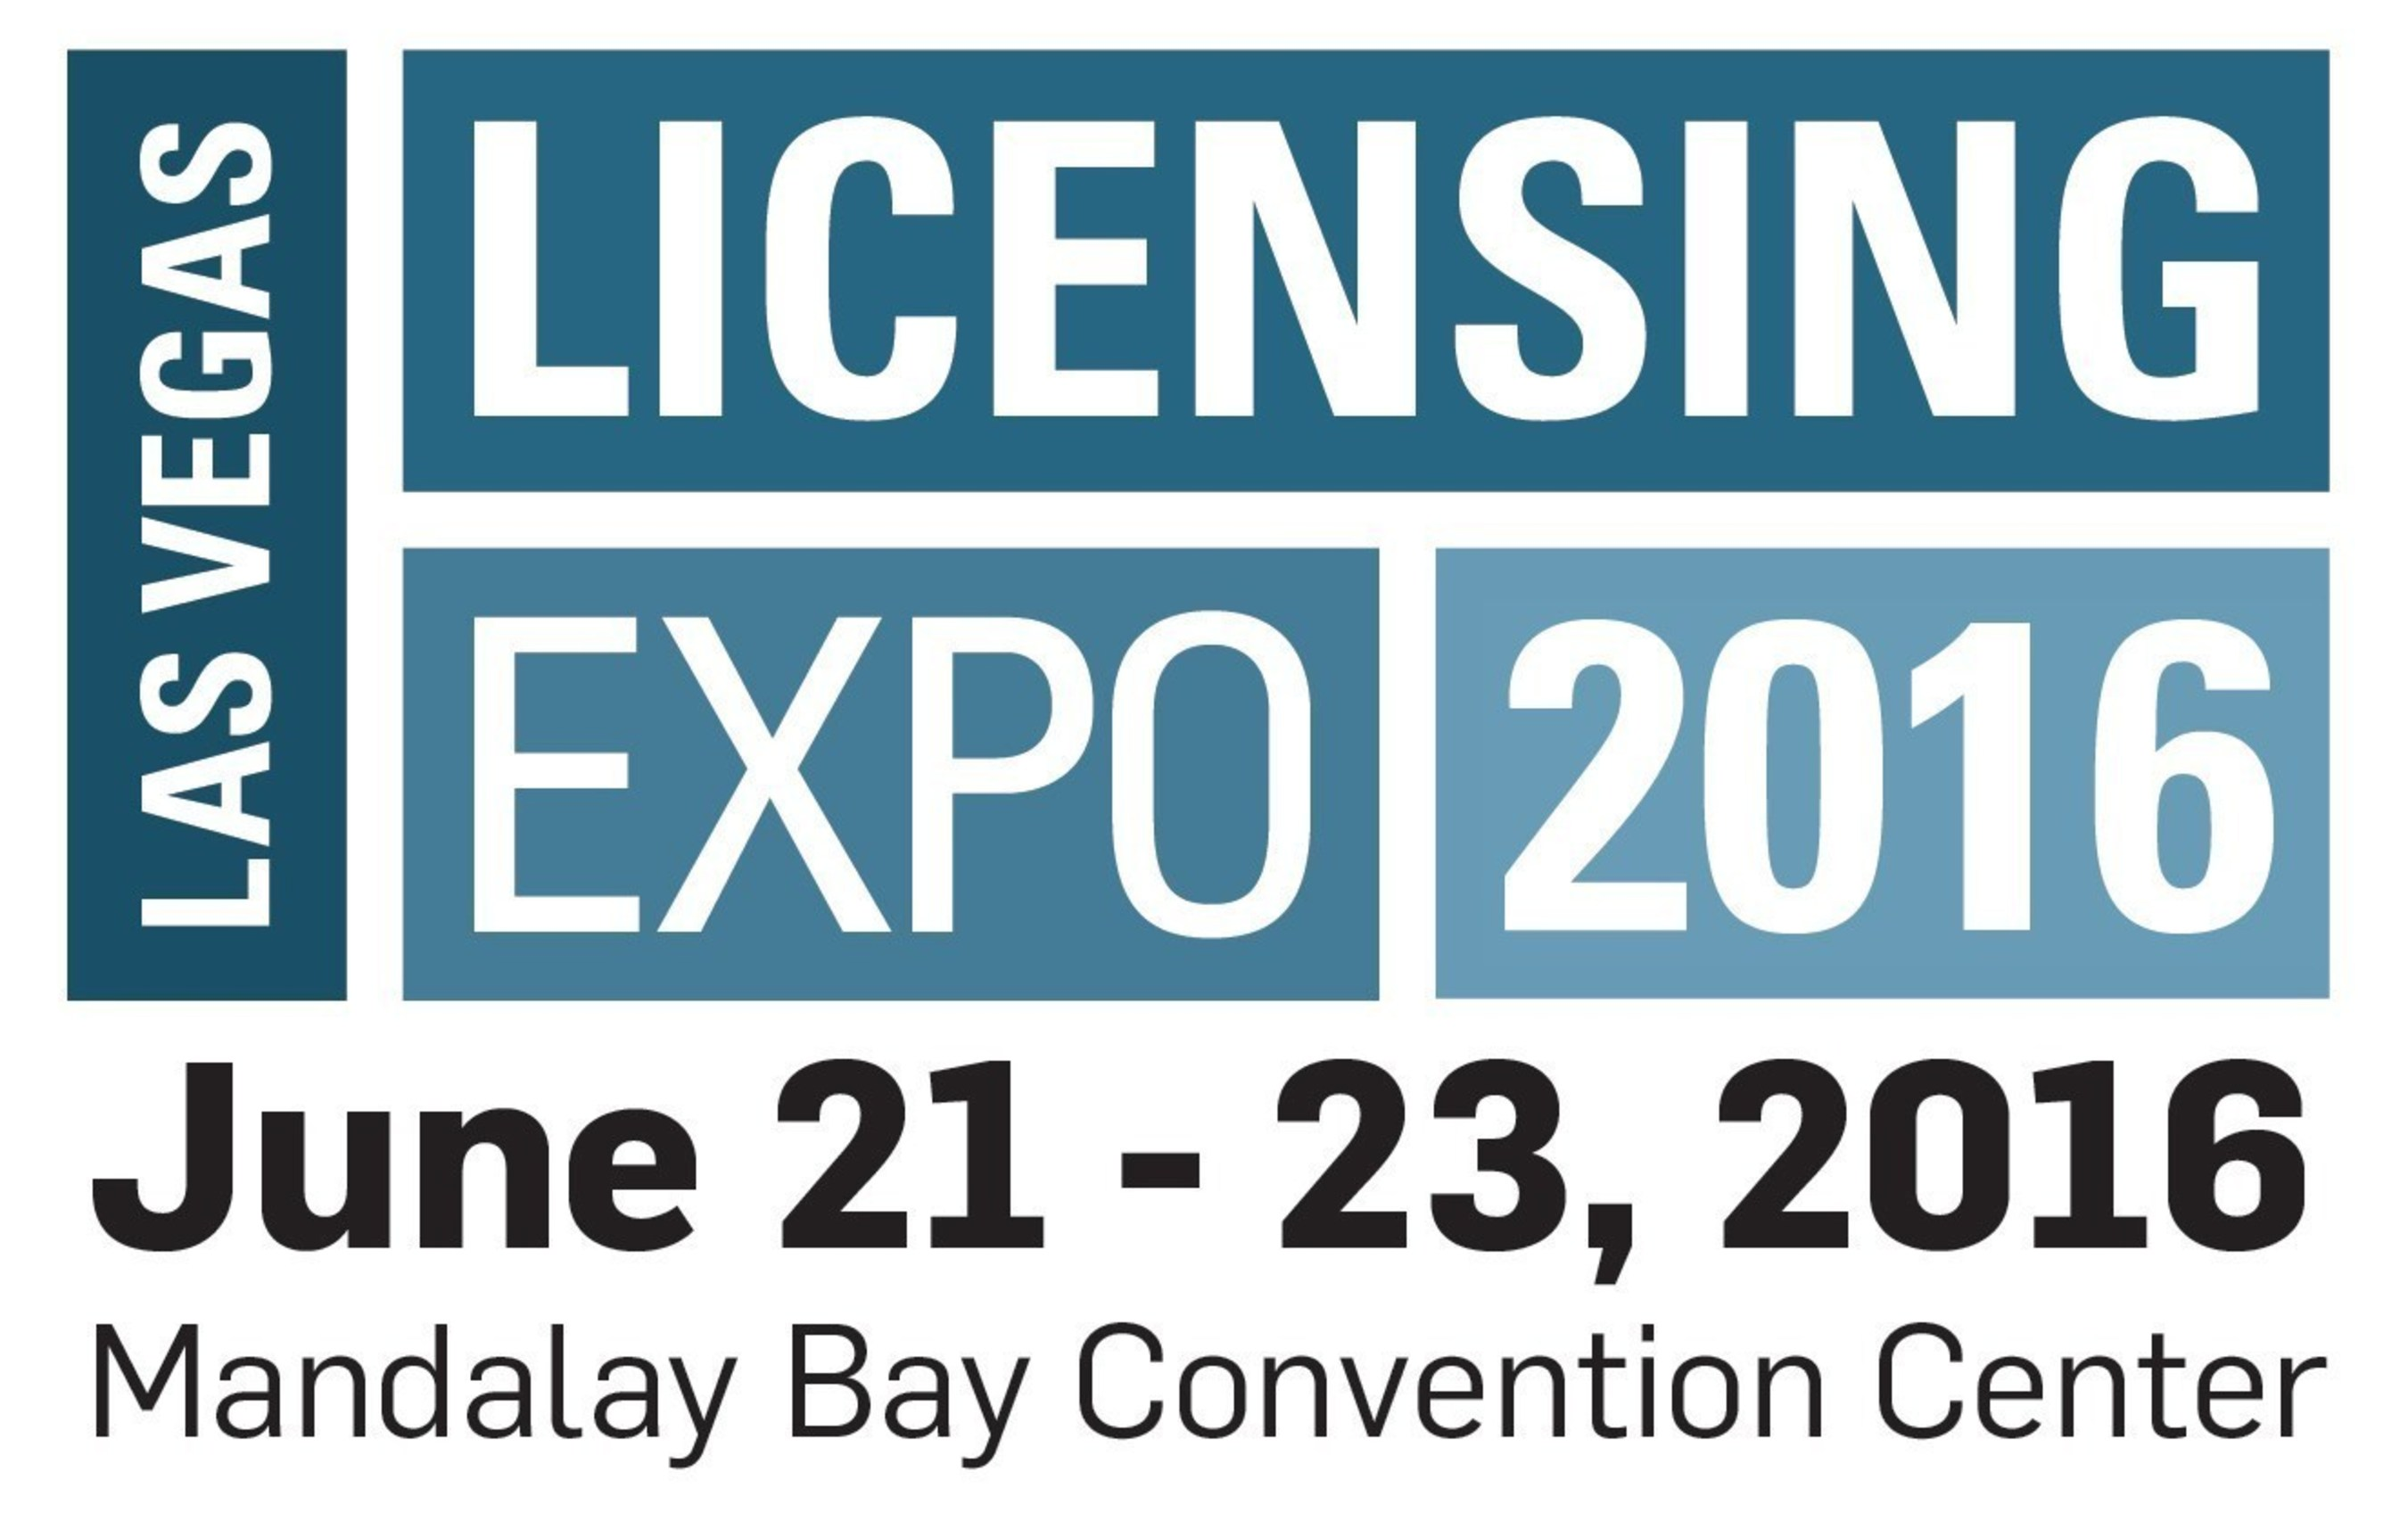 Look Who's Booked For The New Year: Licensing Expo Rings In 2016 With New Exhibitors